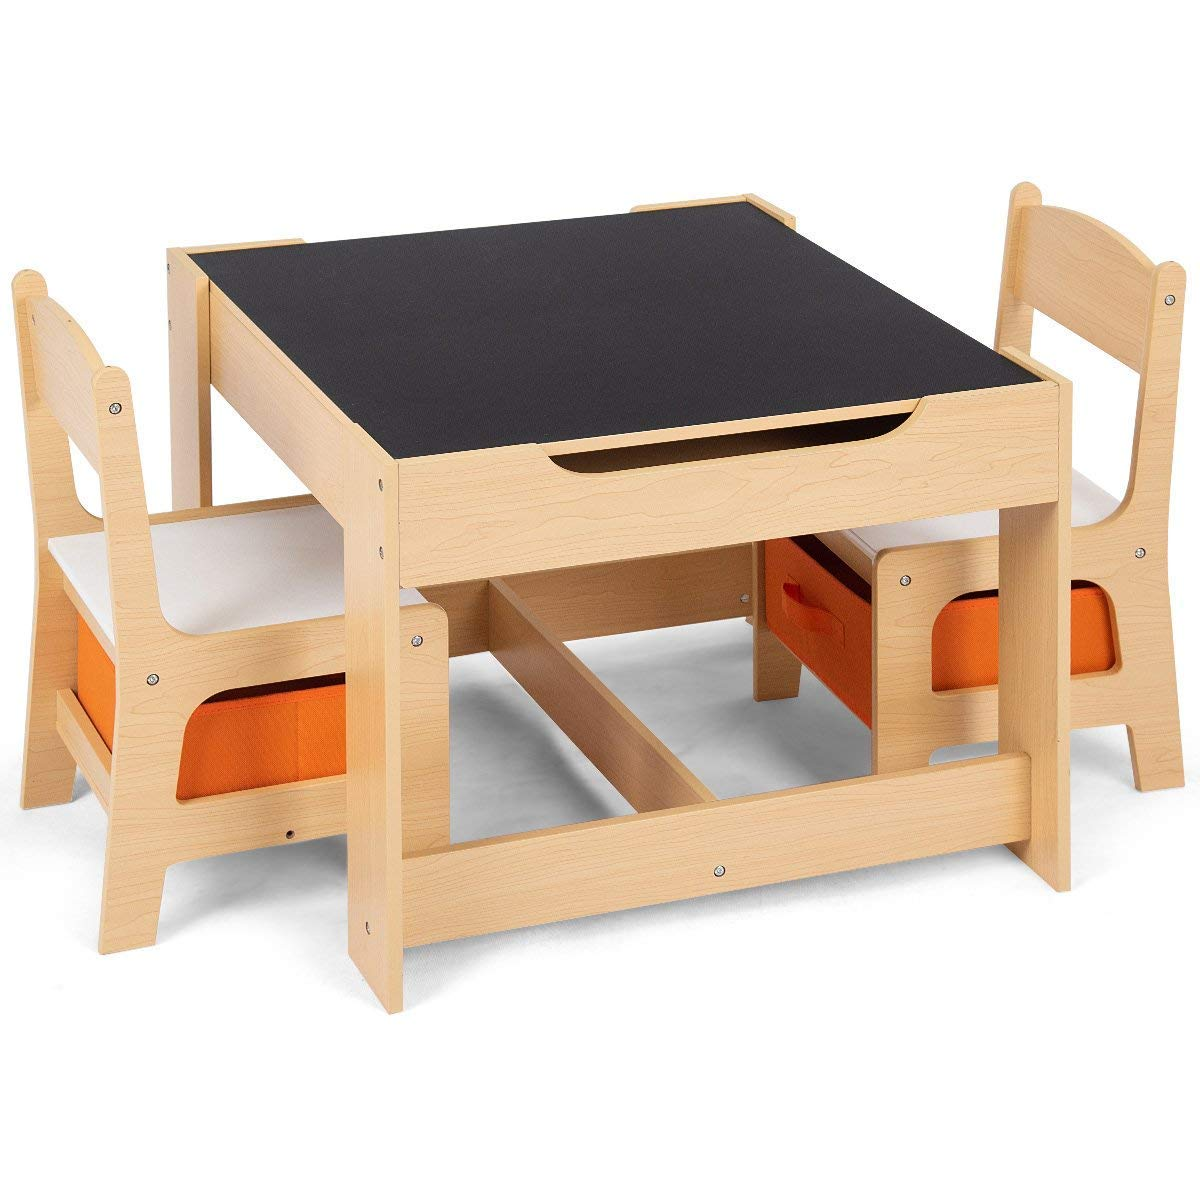 Costzon Kids Table and 2 Chairs Set, 3 in 1 Wooden Table Furniture for Toddlers Drawing, Reading, Train, Art Playroom, Activity Table Desk Sets (Convertible Set with Storage Space) by Costzon (Image #4)